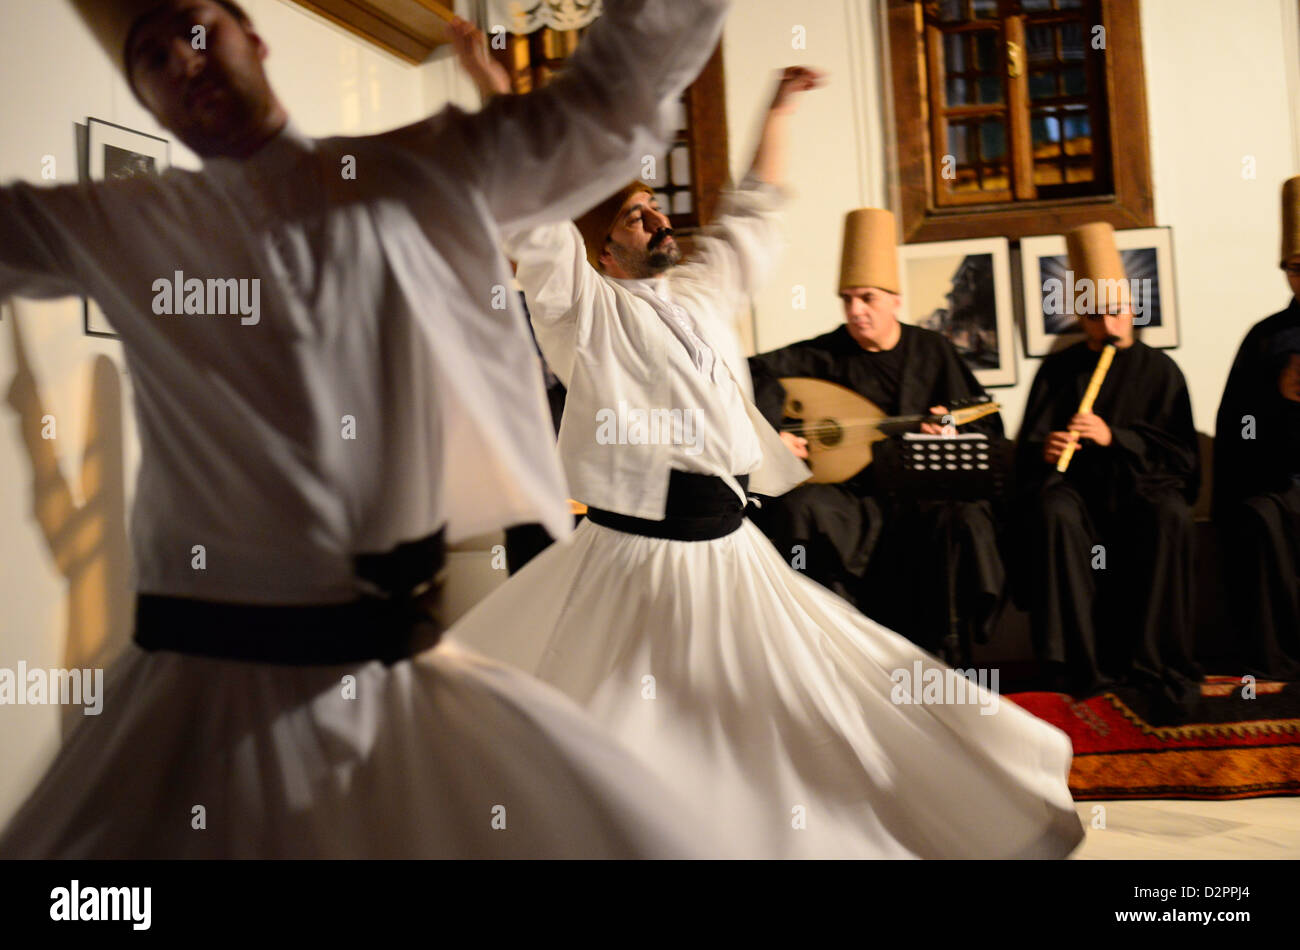 Whirling Dervishes in Turkey. - Stock Image